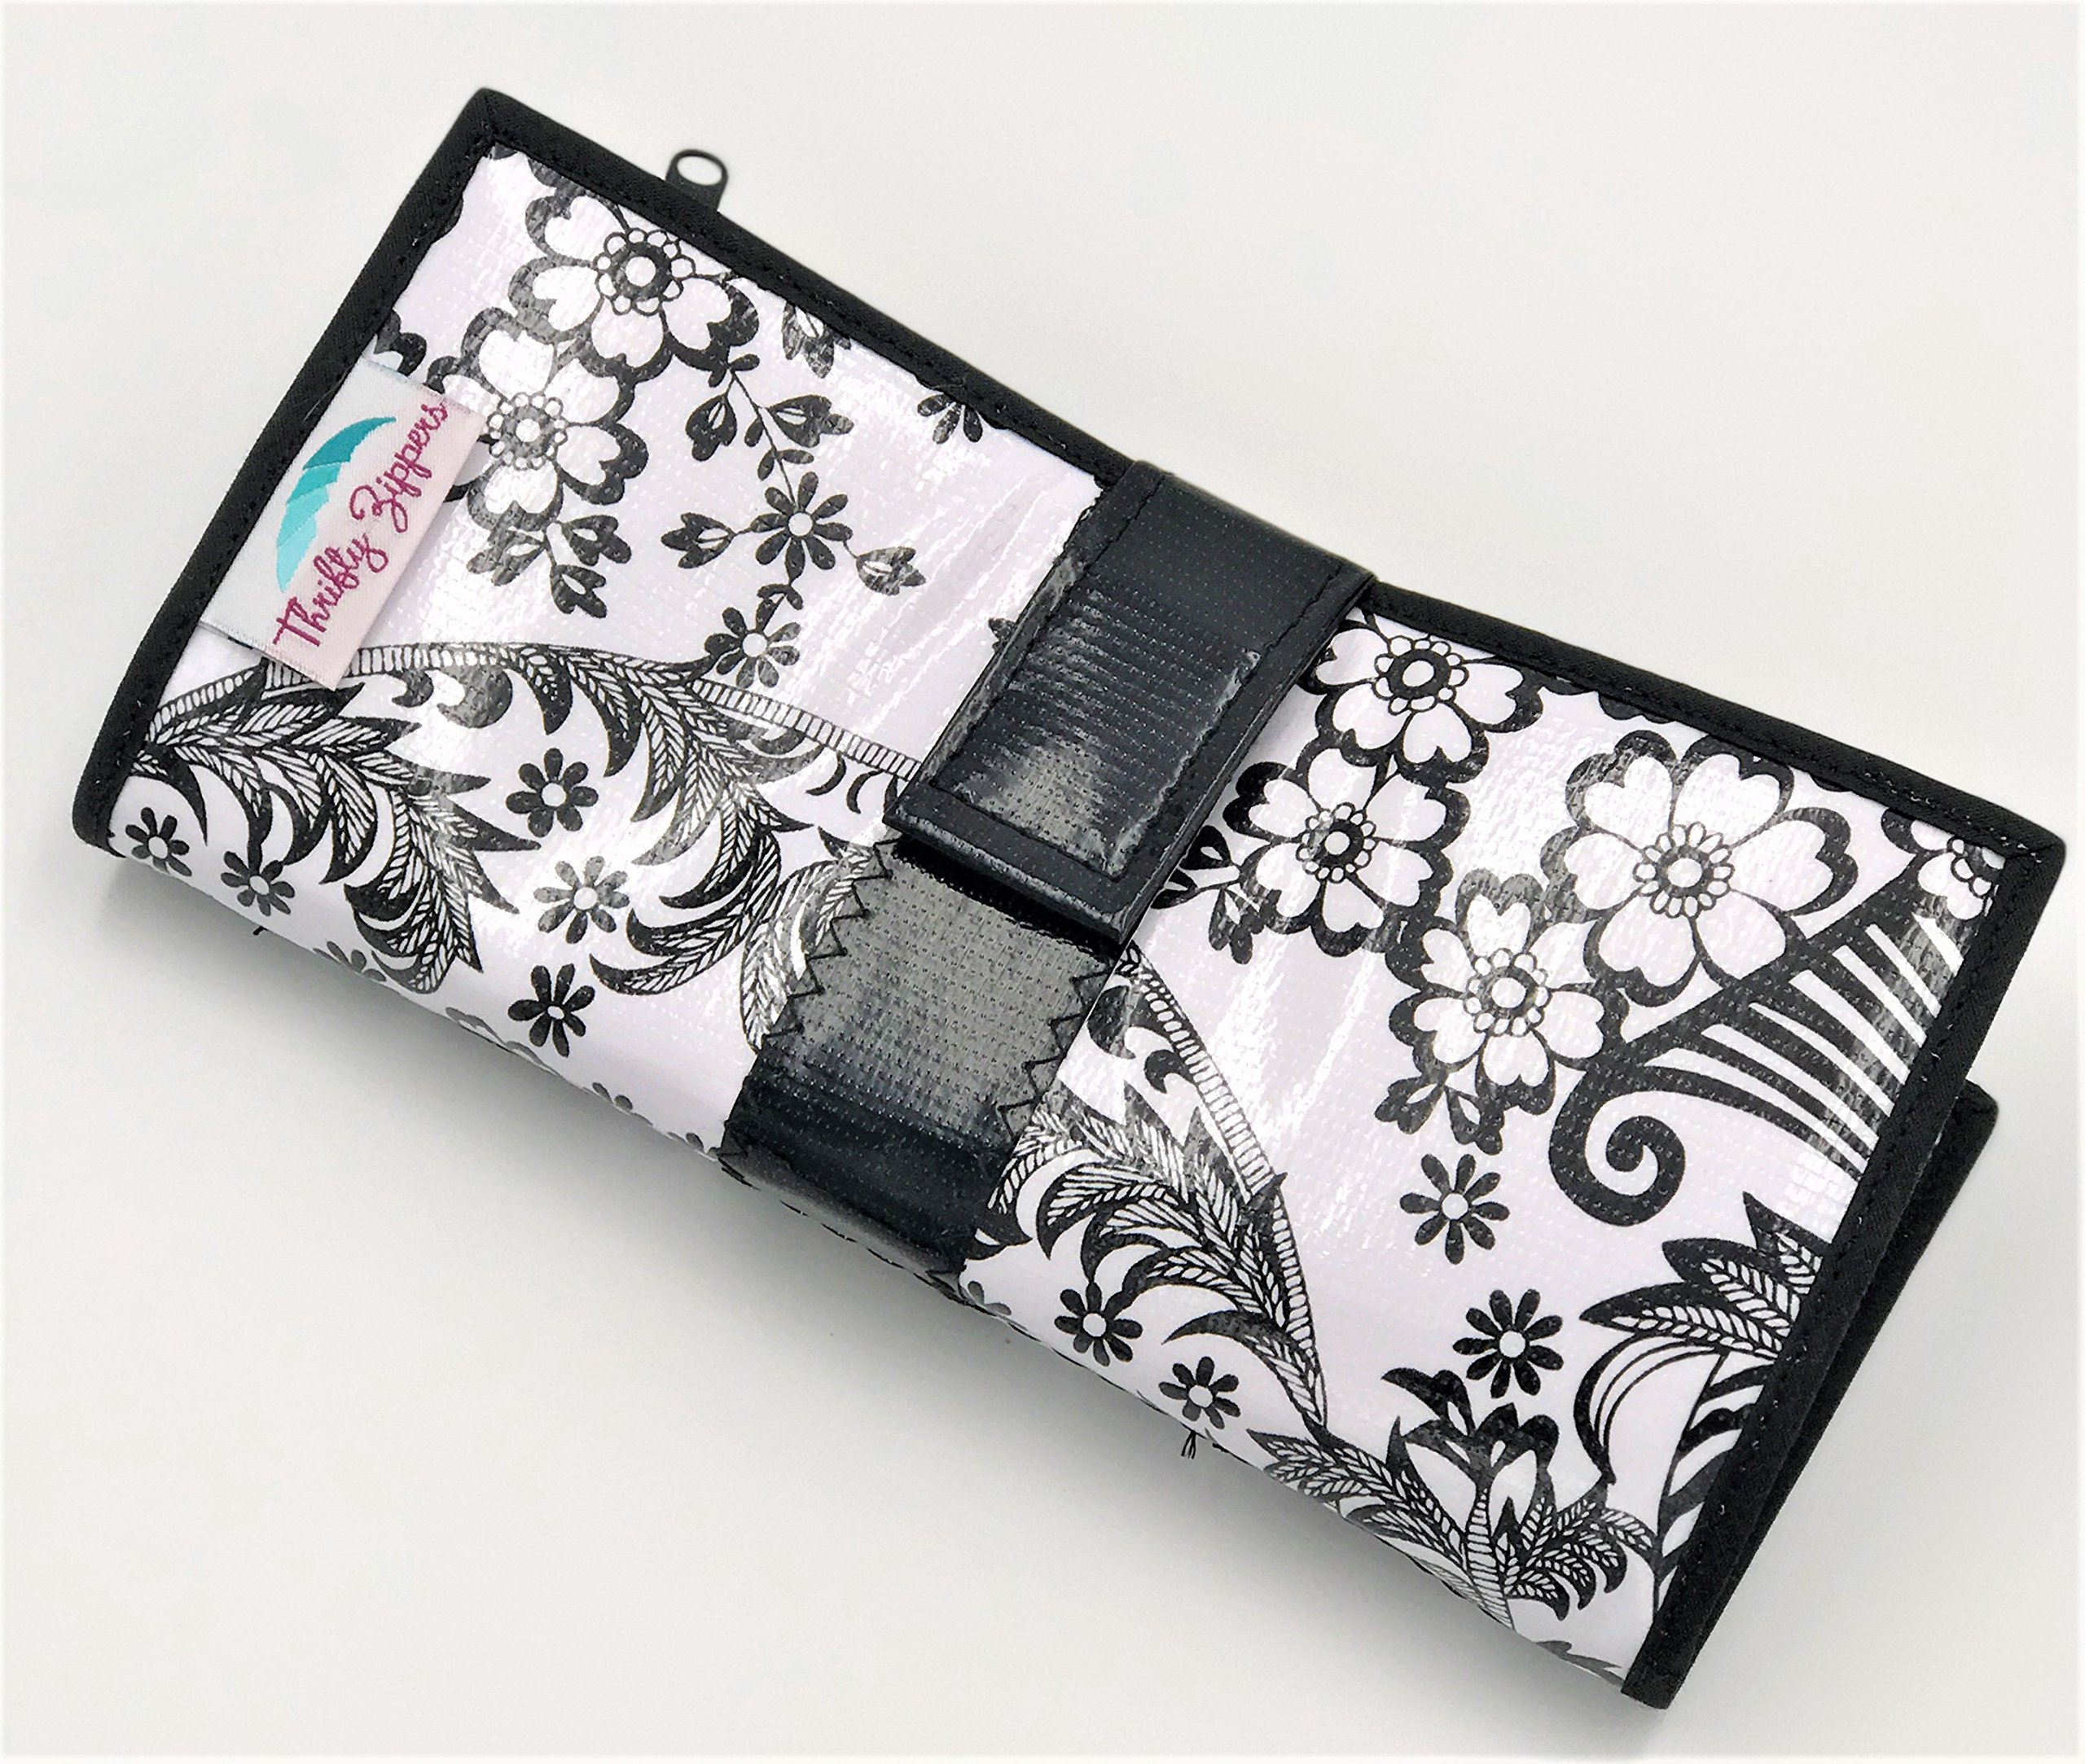 Cute Black and White Oilcloth Envelope System Wallet for Cash Budgeting and Extreme Couponing by Thrifty Zippers